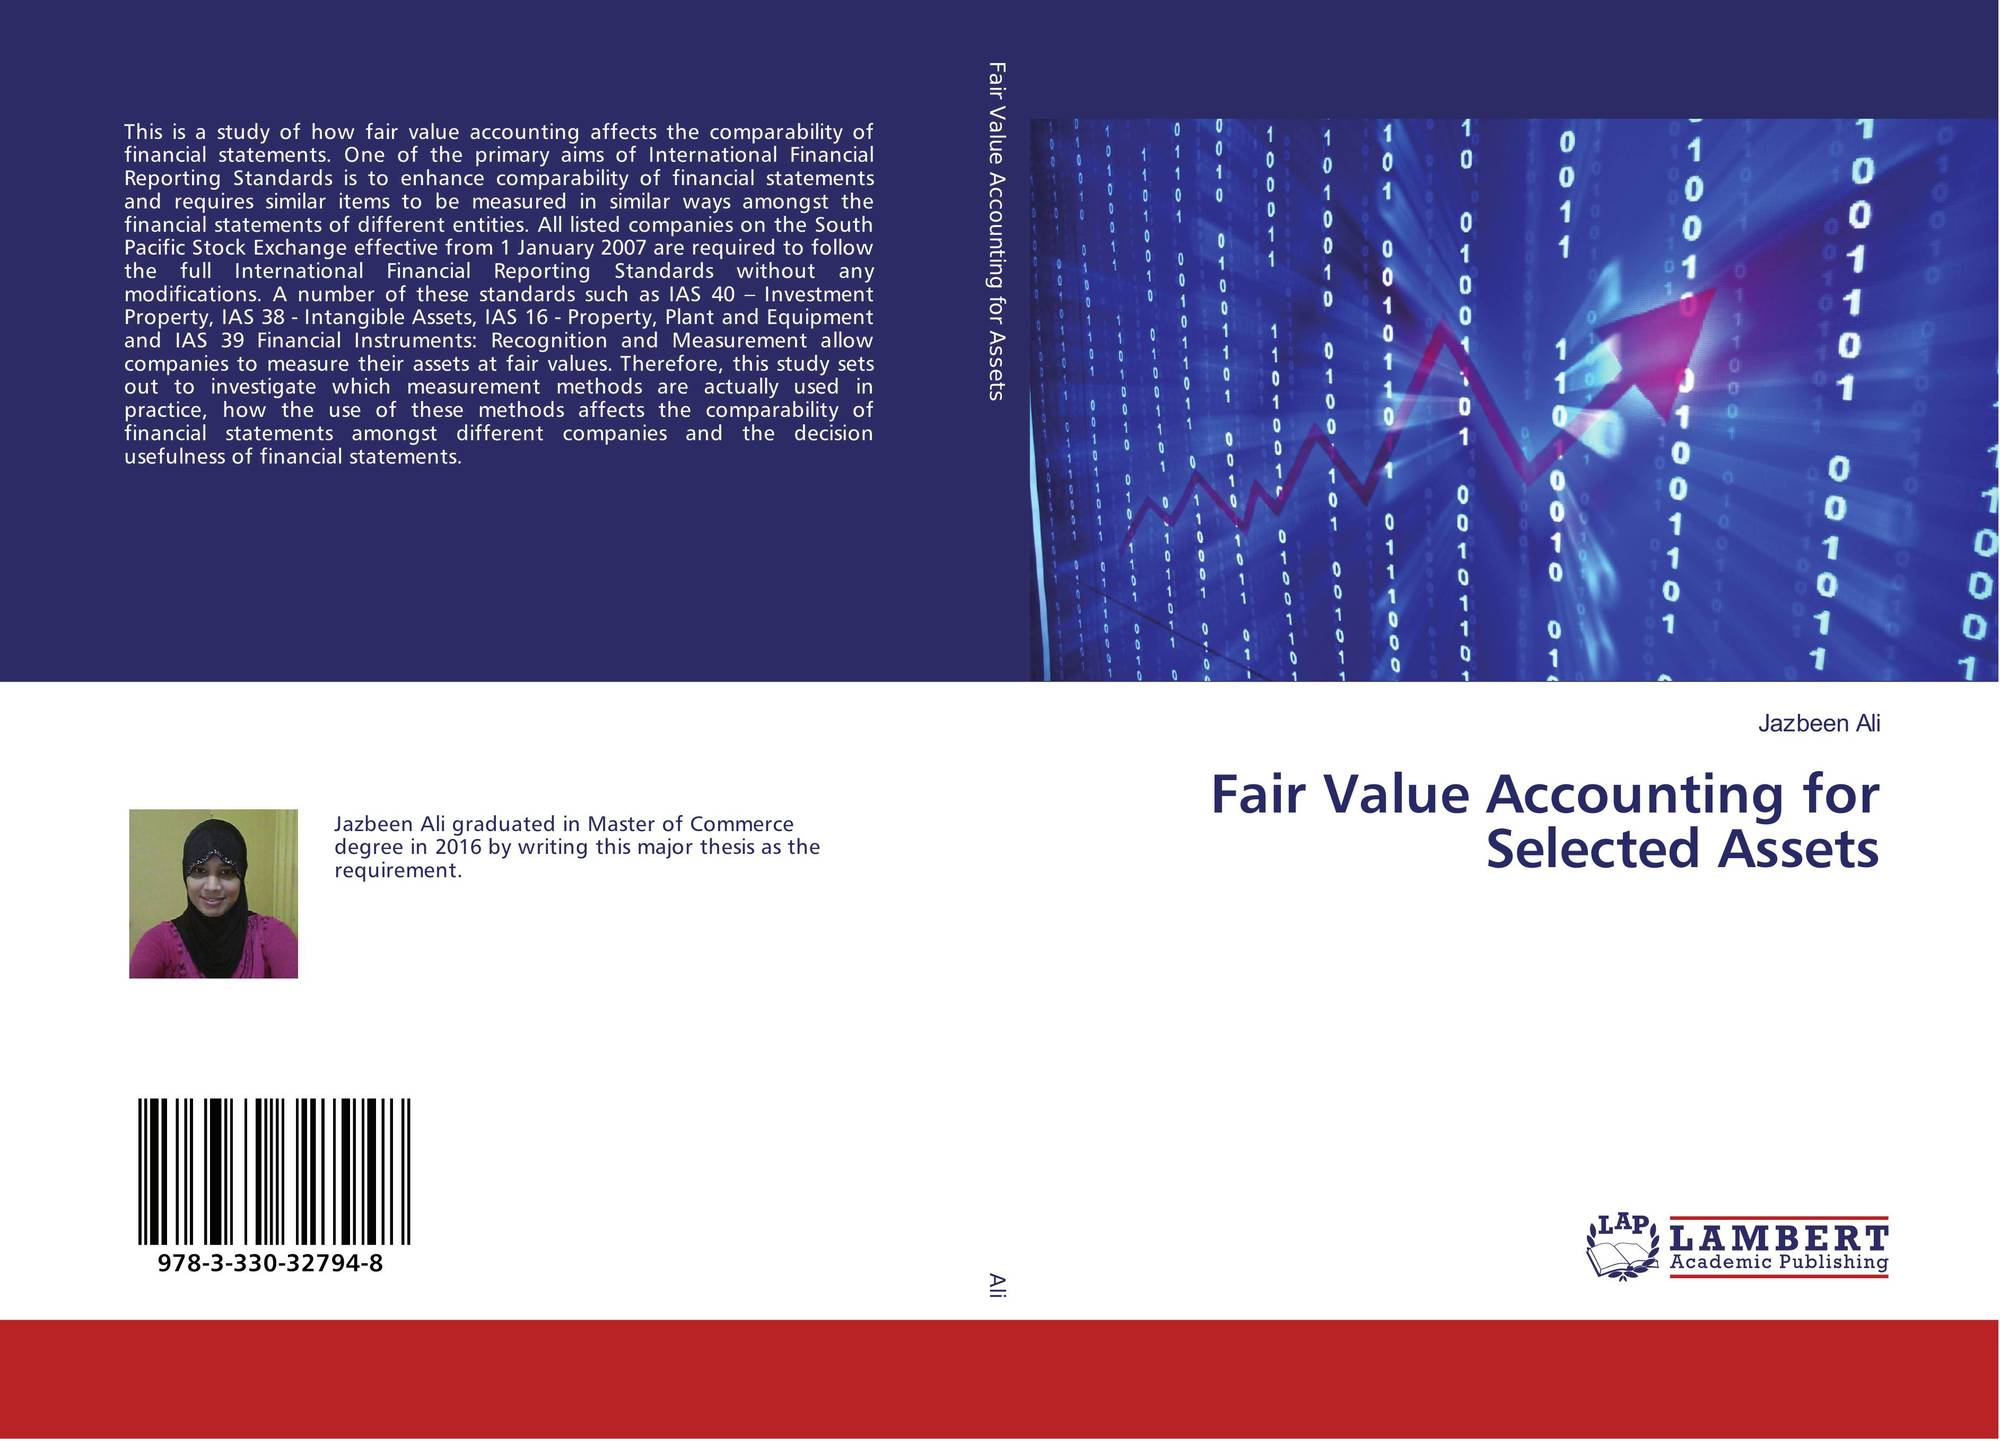 fair value accounting 4 essay